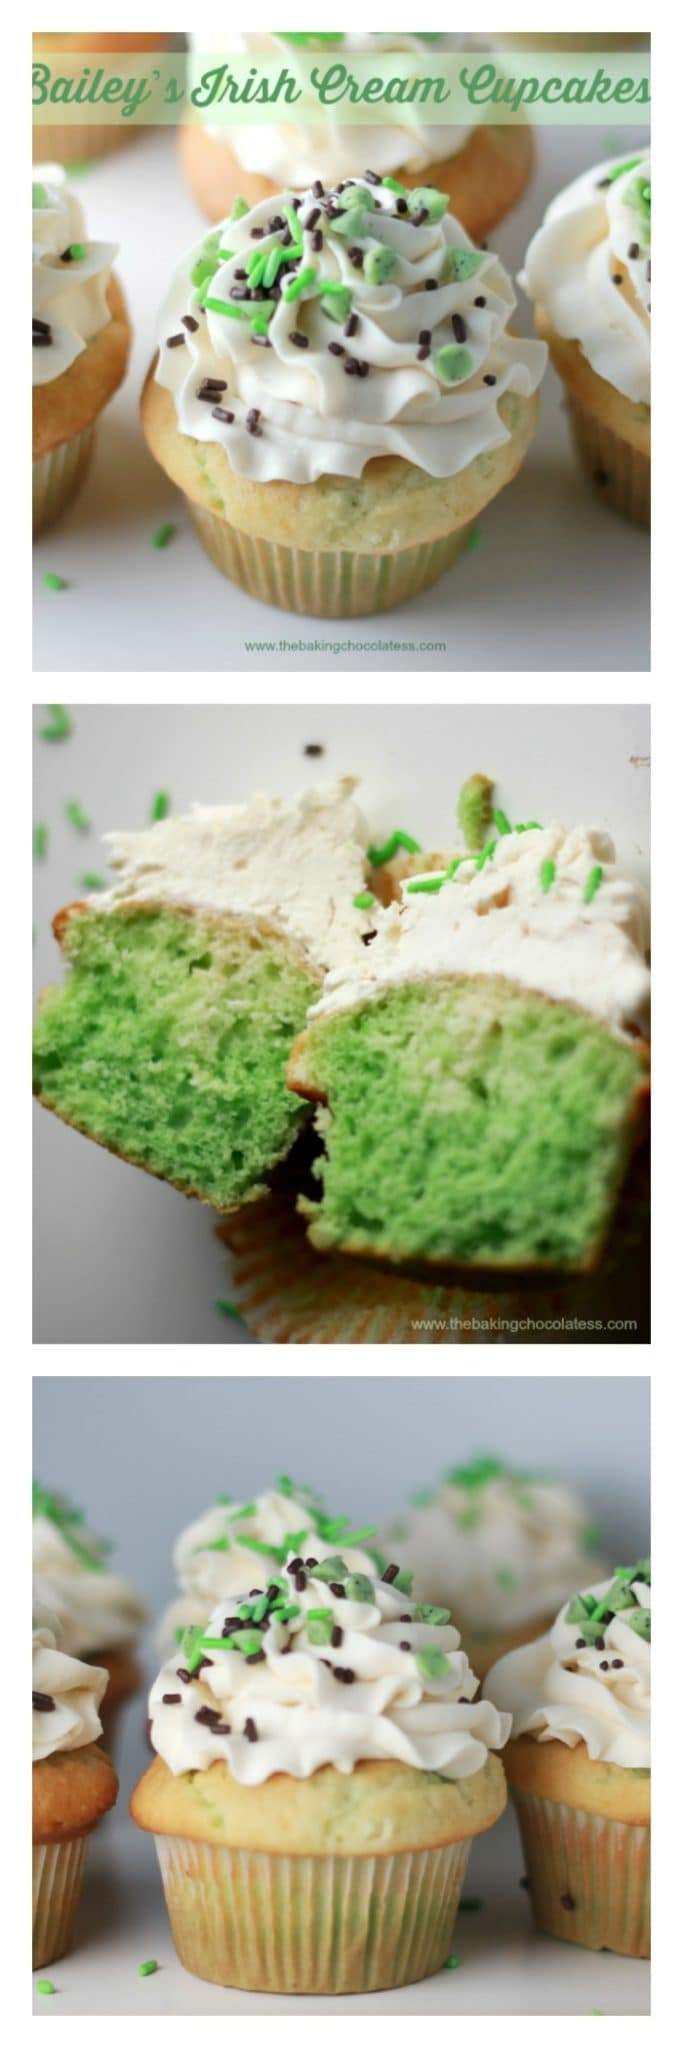 Bailey's Irish Cream Cupcakes!